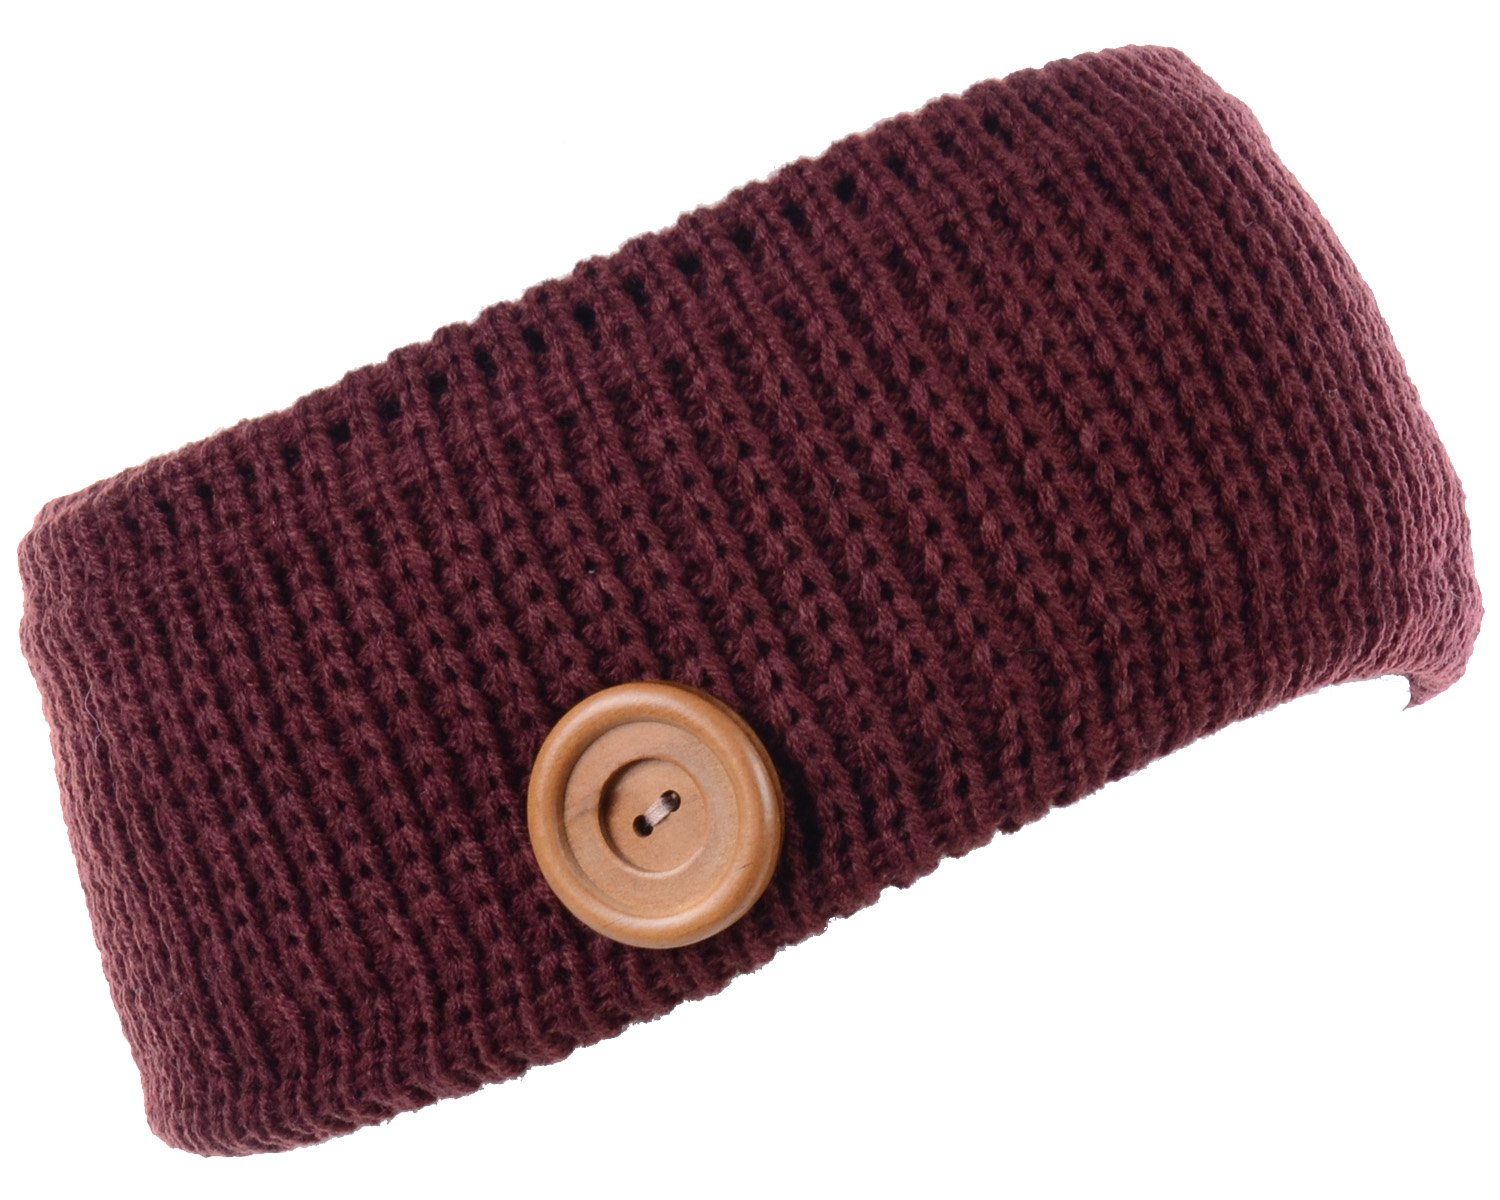 BYOS Winter Warm Plush Fleece Lined Knit Headband Hair Wrap Ear Warmer,Many Styles (Rib Knit W/Button Burgundy) by Be Your Own Style